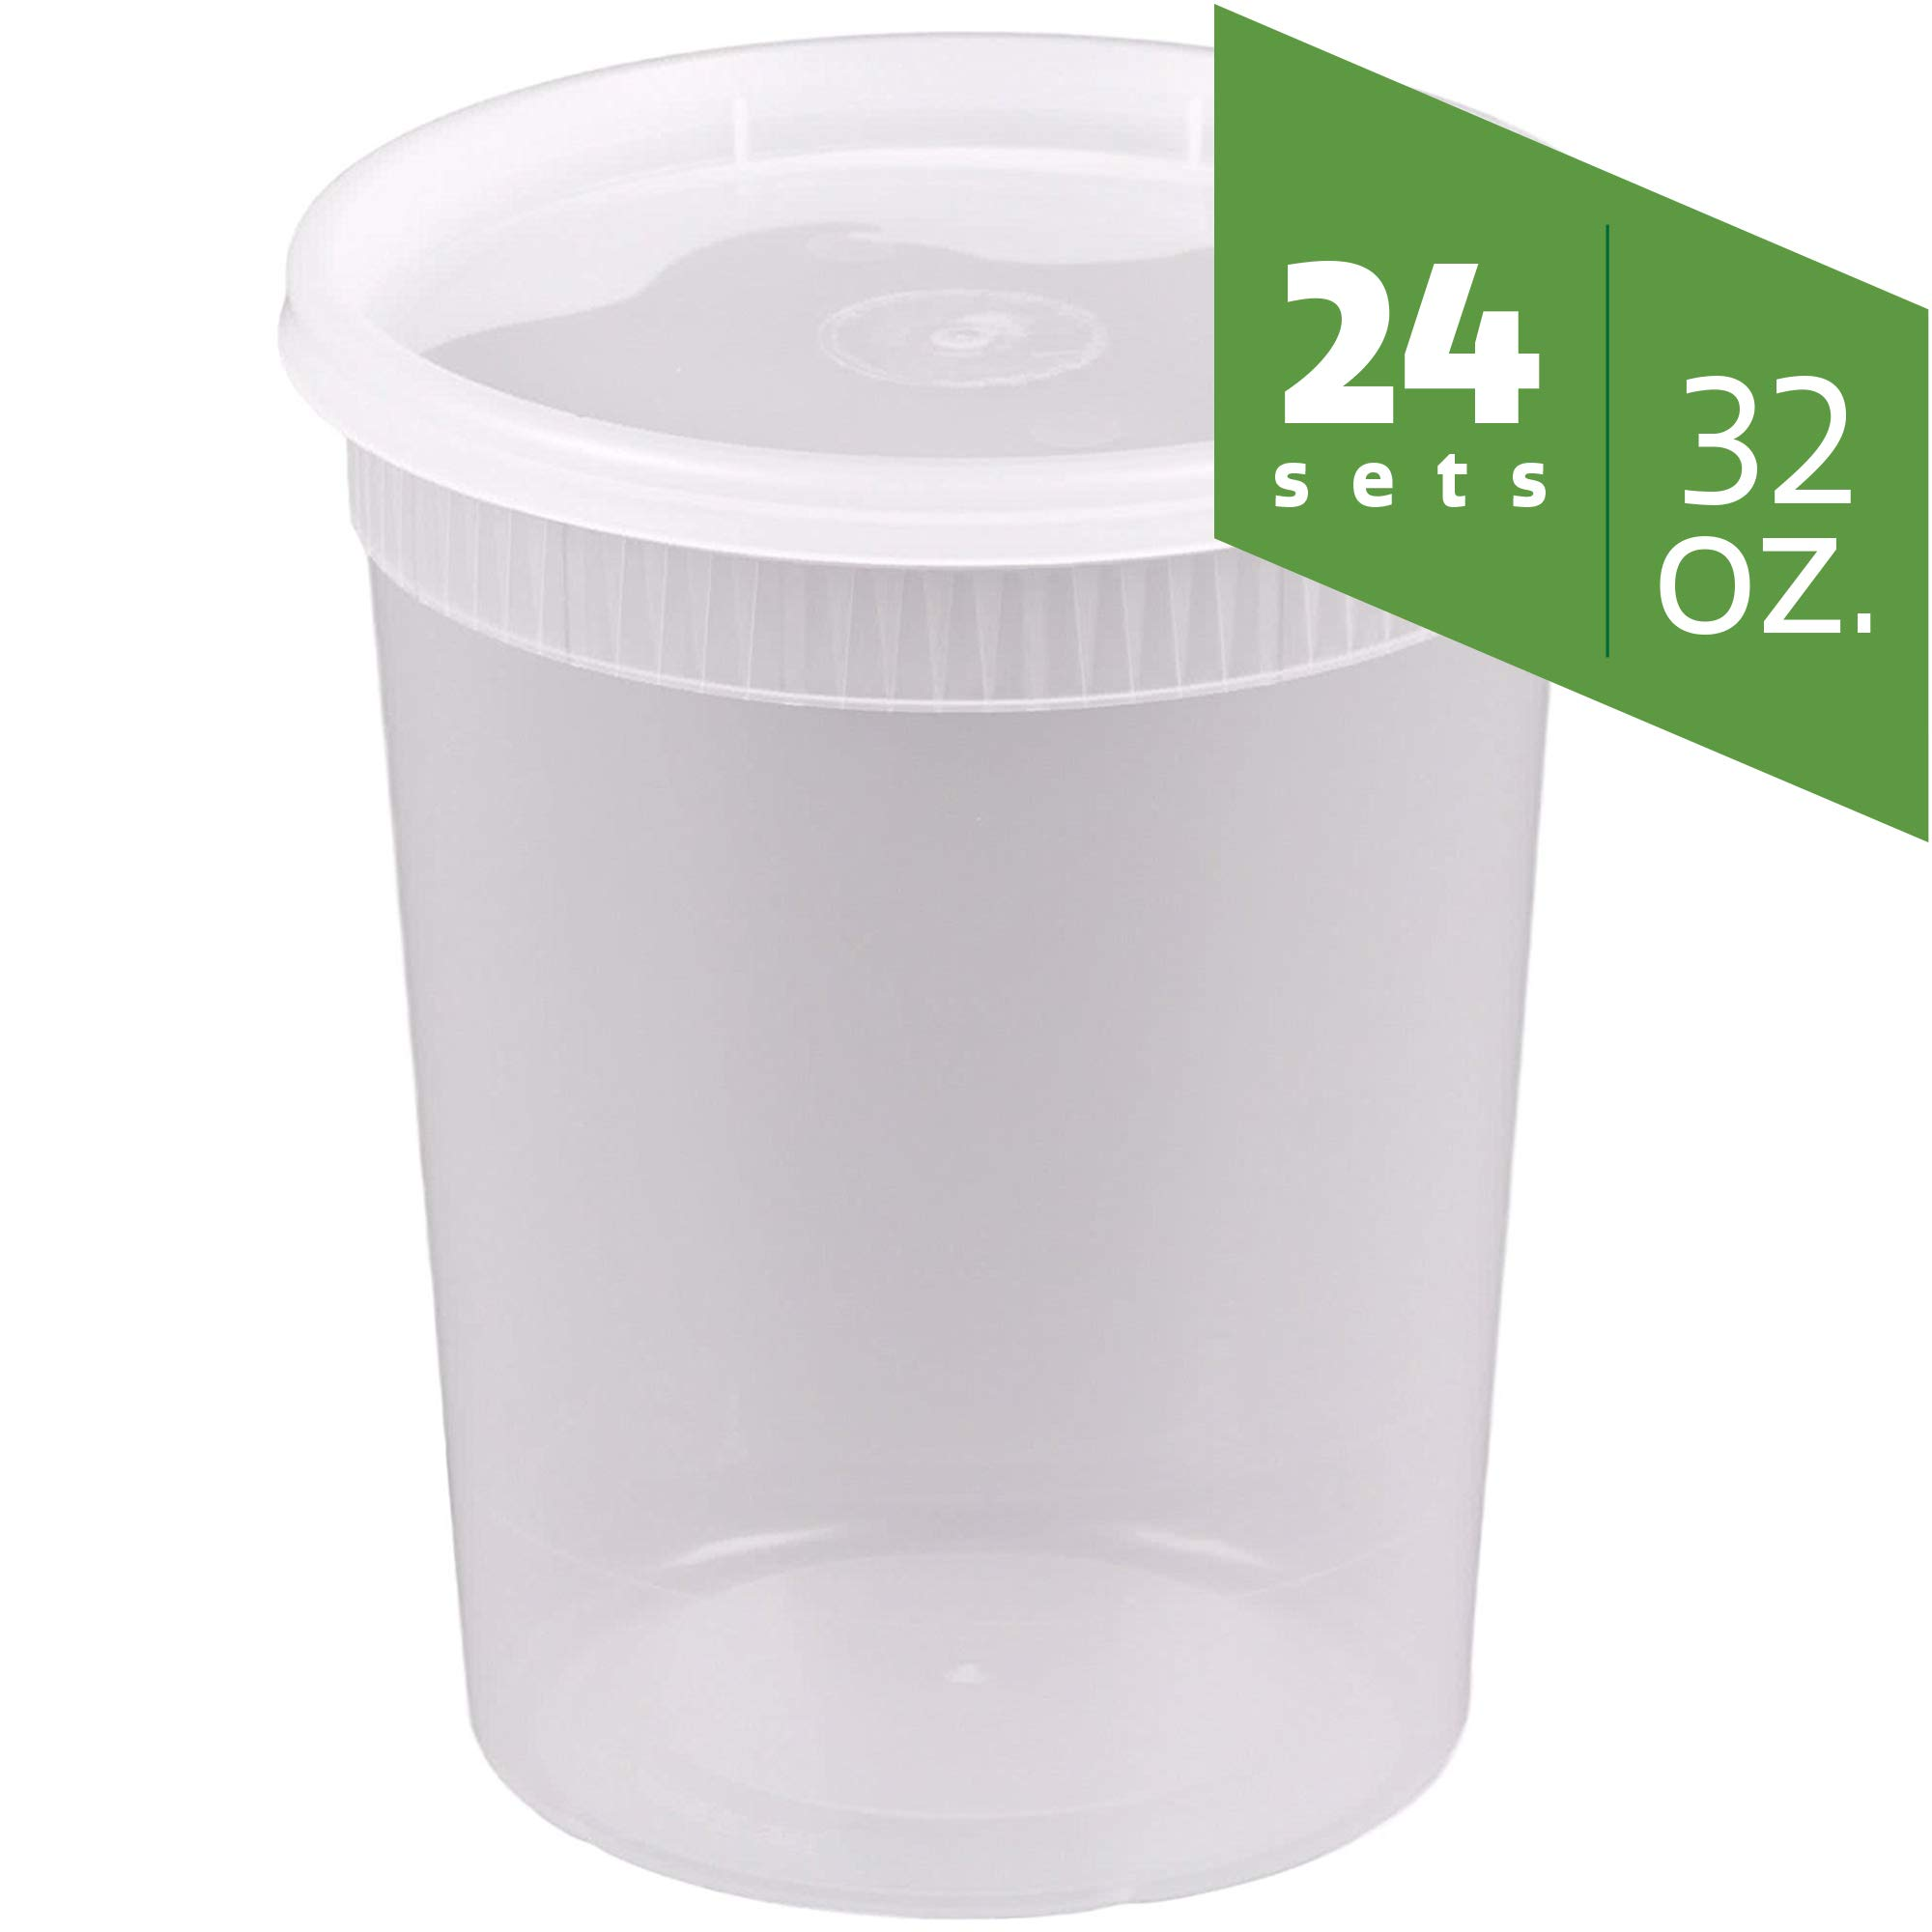 Plastic Deli Food Storage Containers with Airtight Lids (32 oz. - 24 Sets) by Comfy Package